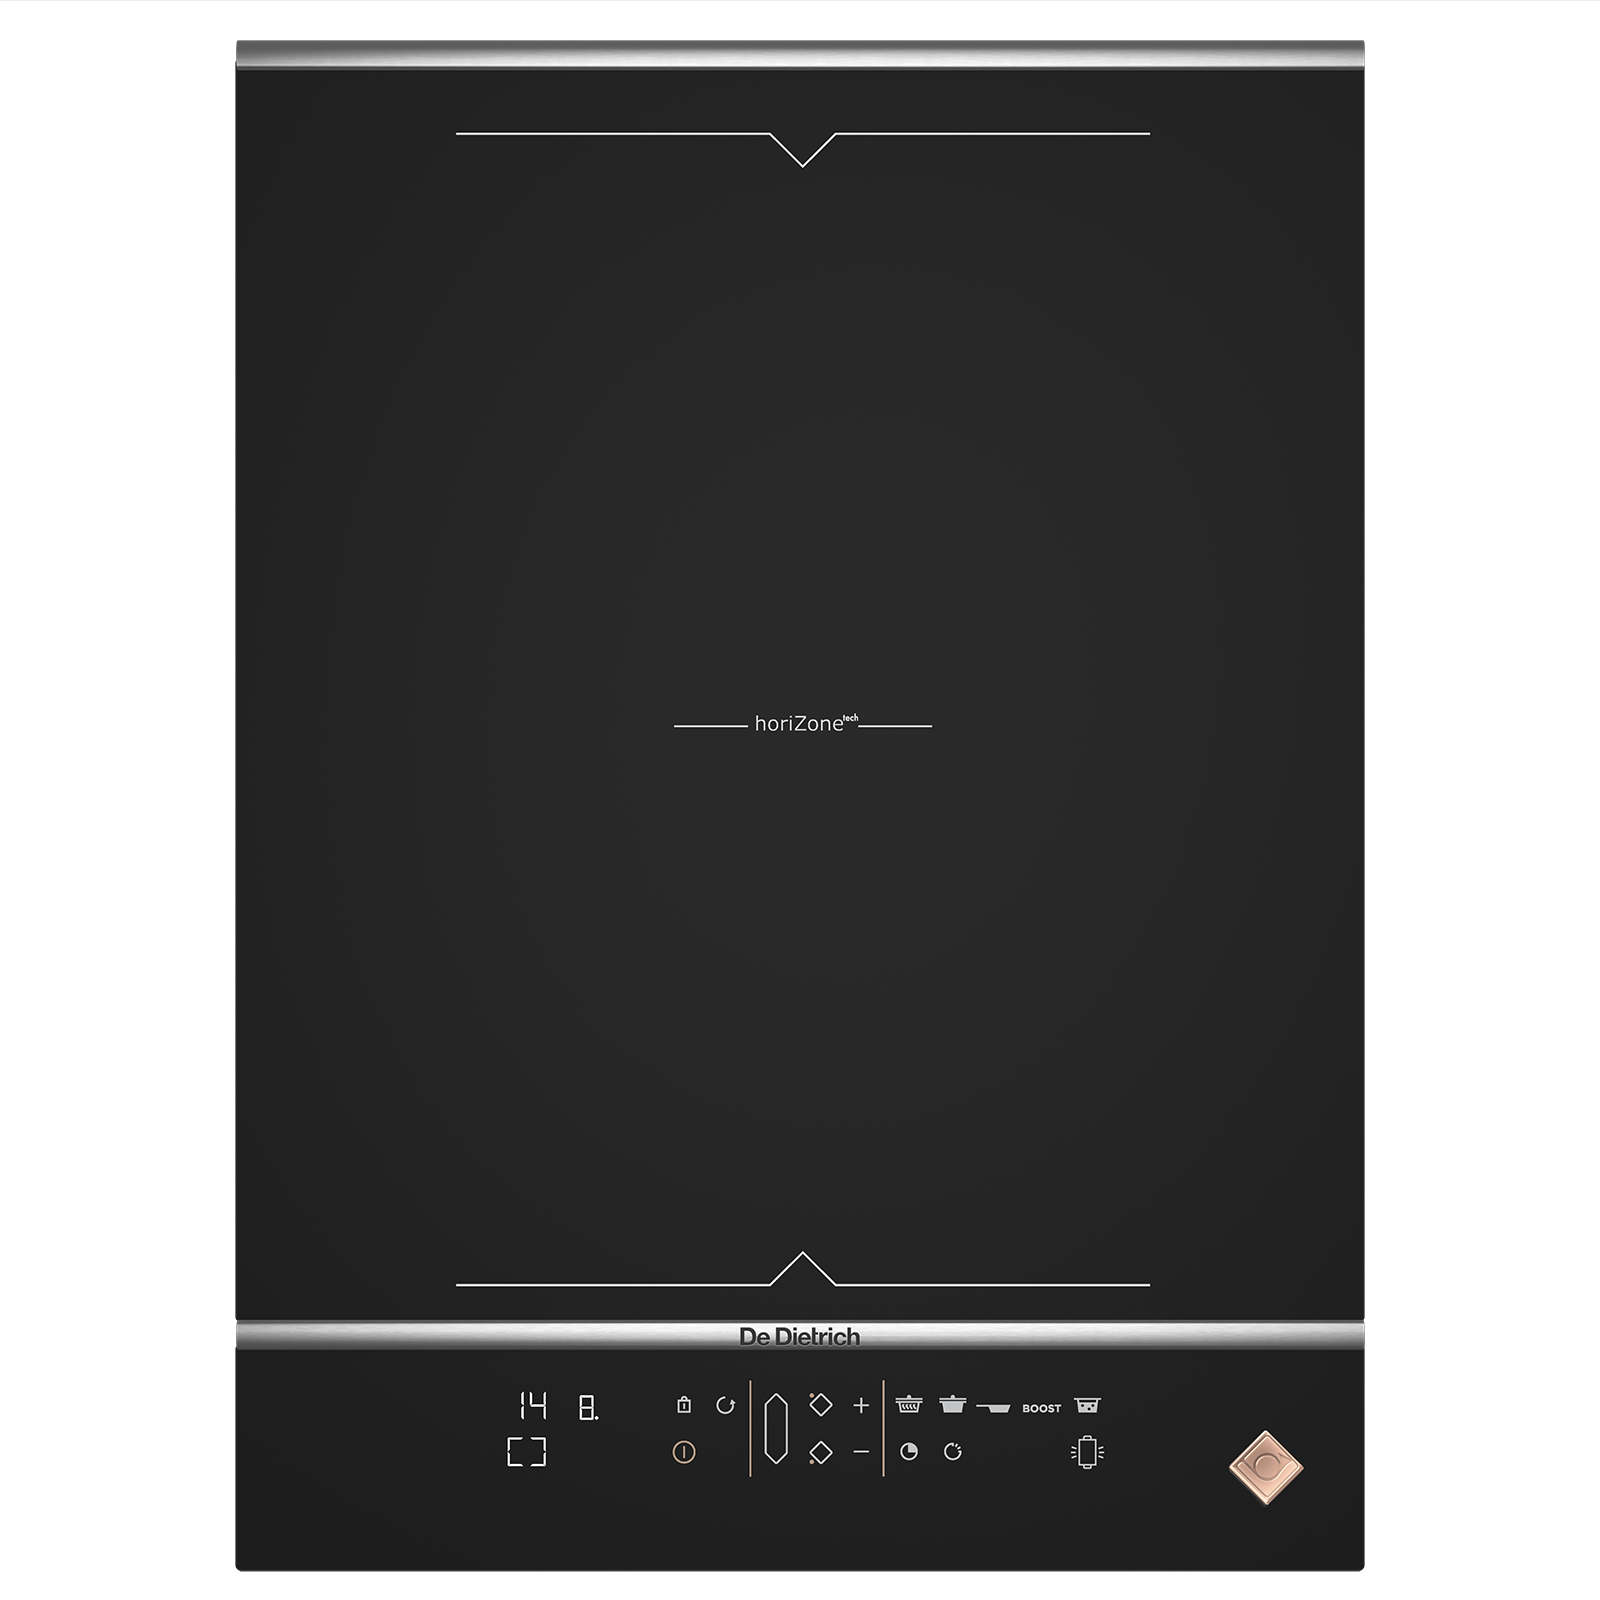 induction hob dpi7469xs de dietrich. Black Bedroom Furniture Sets. Home Design Ideas